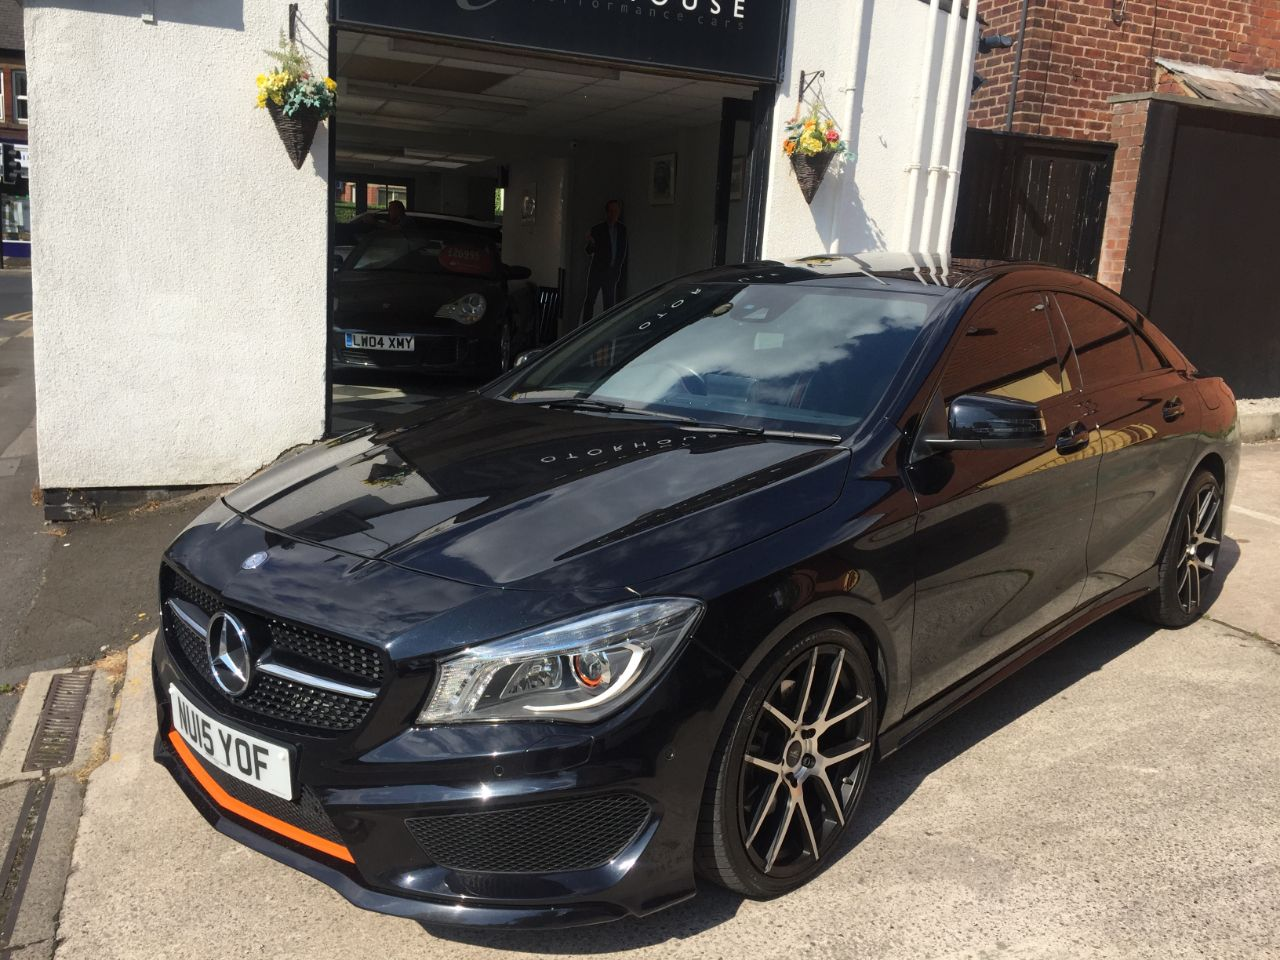 Mercedes-Benz Cla Class 2.1 CLA 220 CDI OrangeArt 4Matic 4dr Tip Auto Saloon Diesel Black at Motorhouse Cheshire Stockport